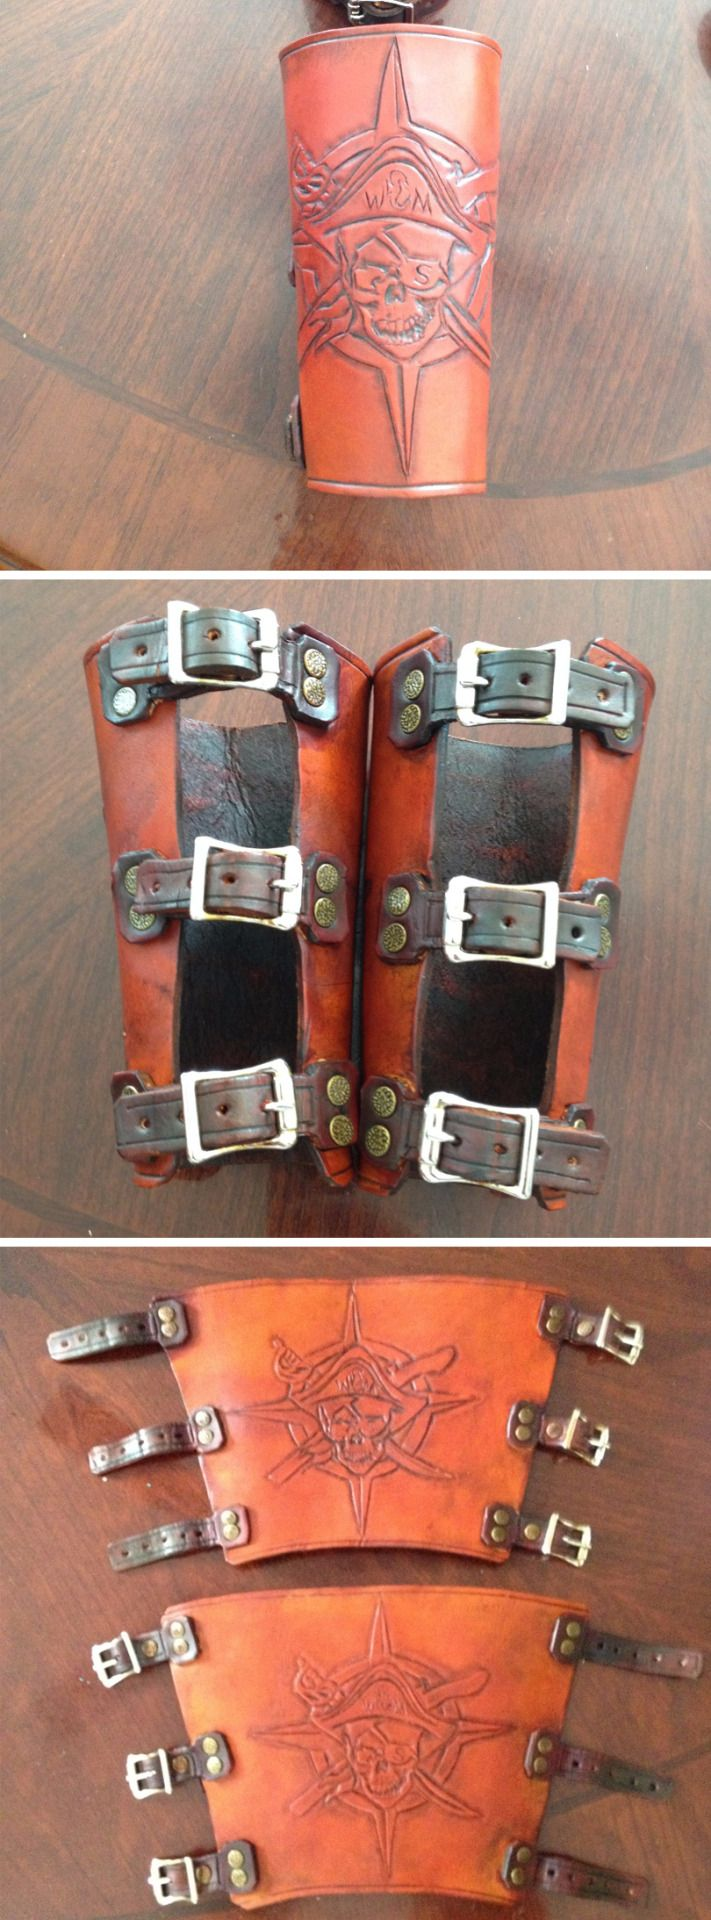 instructables:Leather Forearm Bracers by fxpuppethttp://www.instructables.com/id/Leather-Fore-Arm-Bracers/